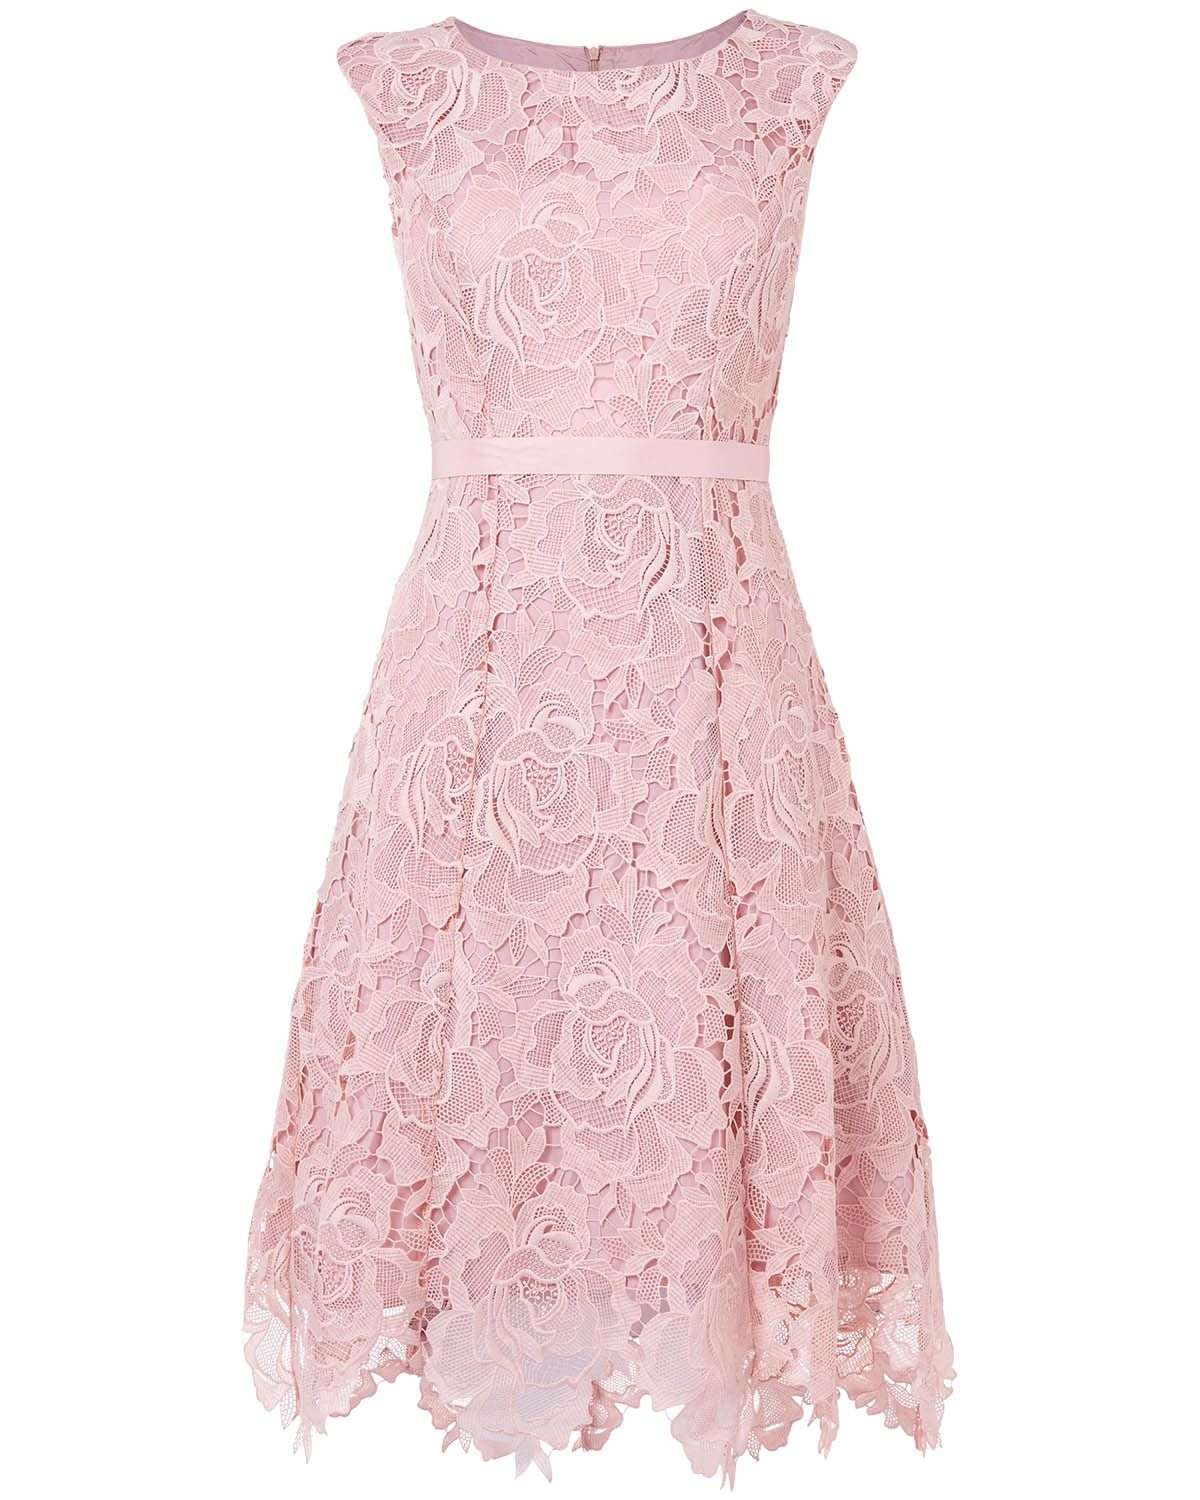 2ae8116e15099 mother of the bride | Pink Rose Lace Fit and Flare Dress | Phase ...